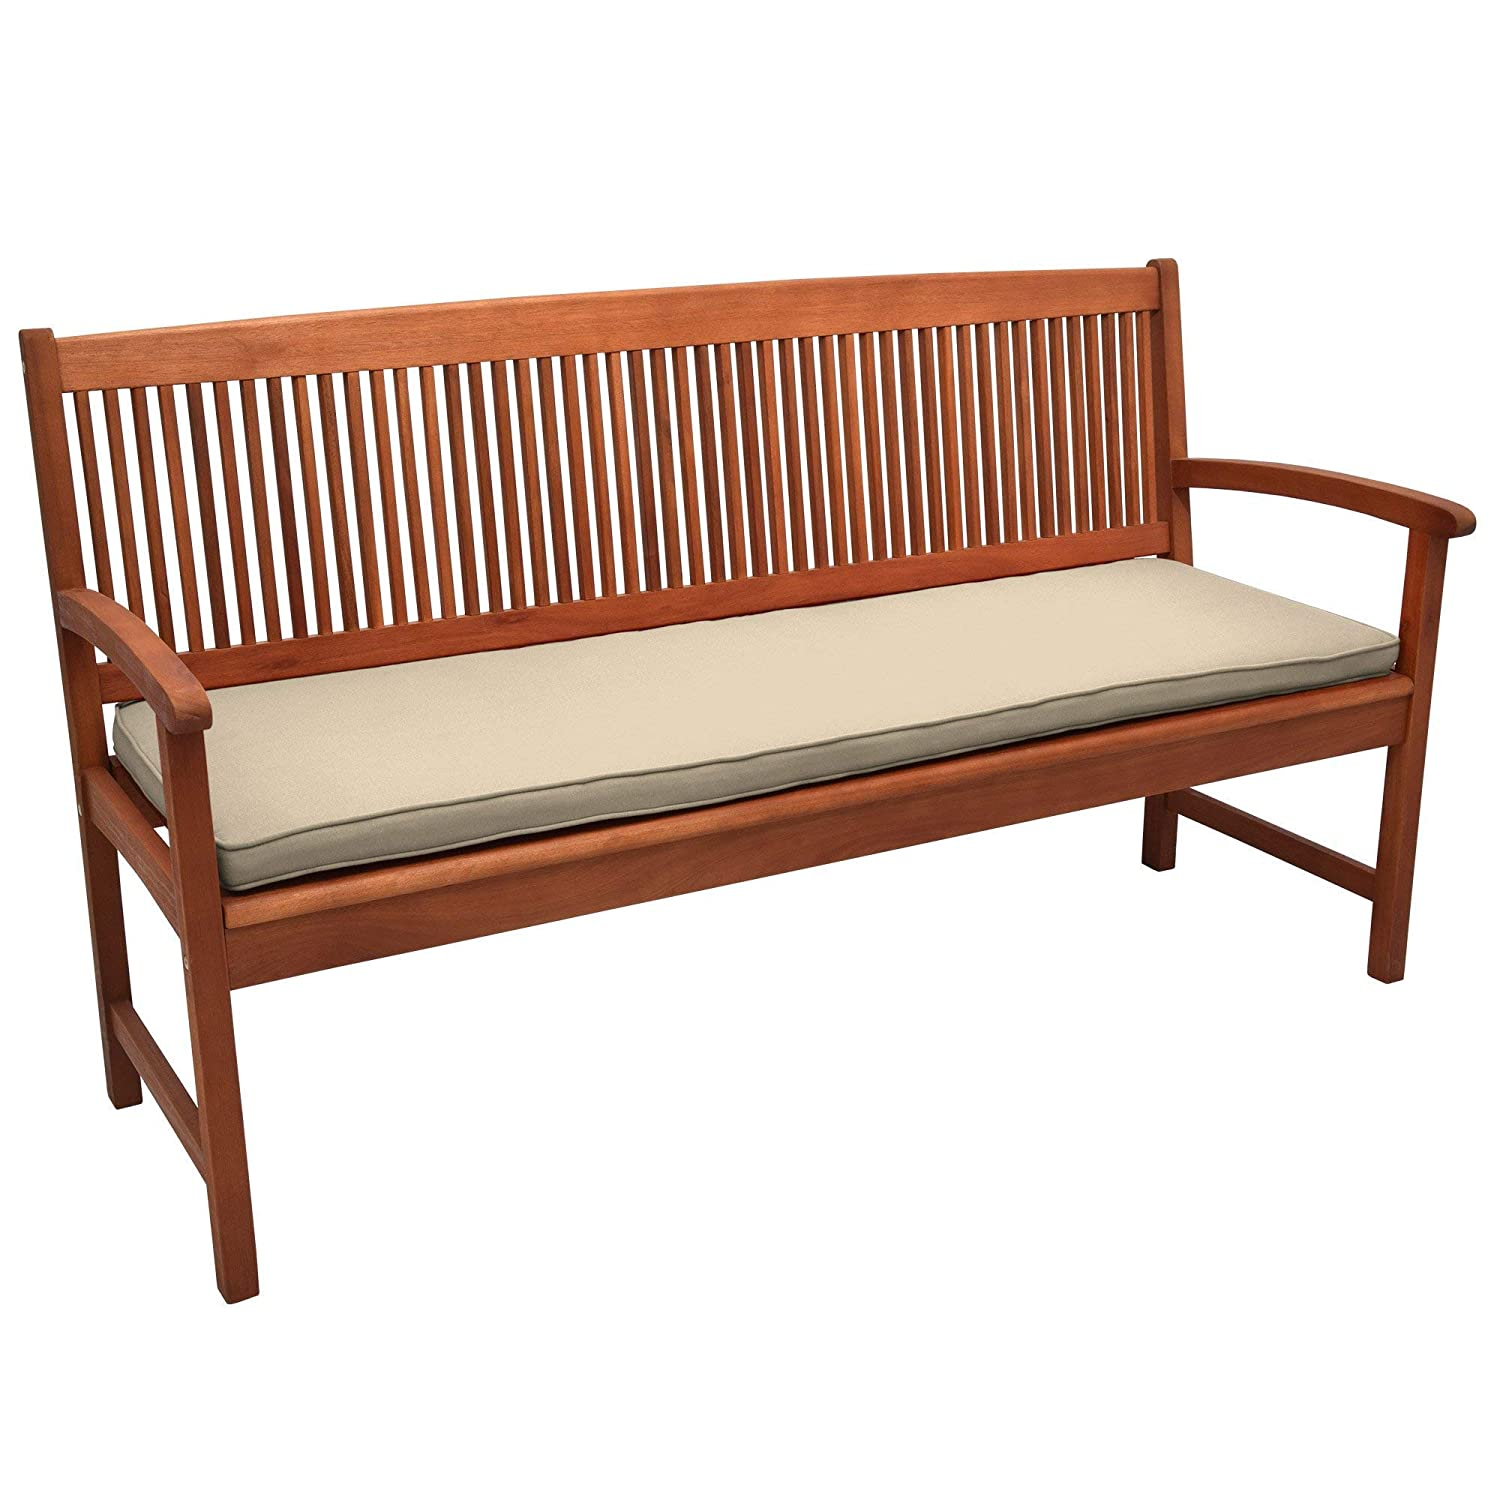 Beautissu Outdoor Bench Cushion Loft BK Comfortable Cushion 100 x 48 x 5 cm Natur 2 or 3 Seater Garden Bench Pad